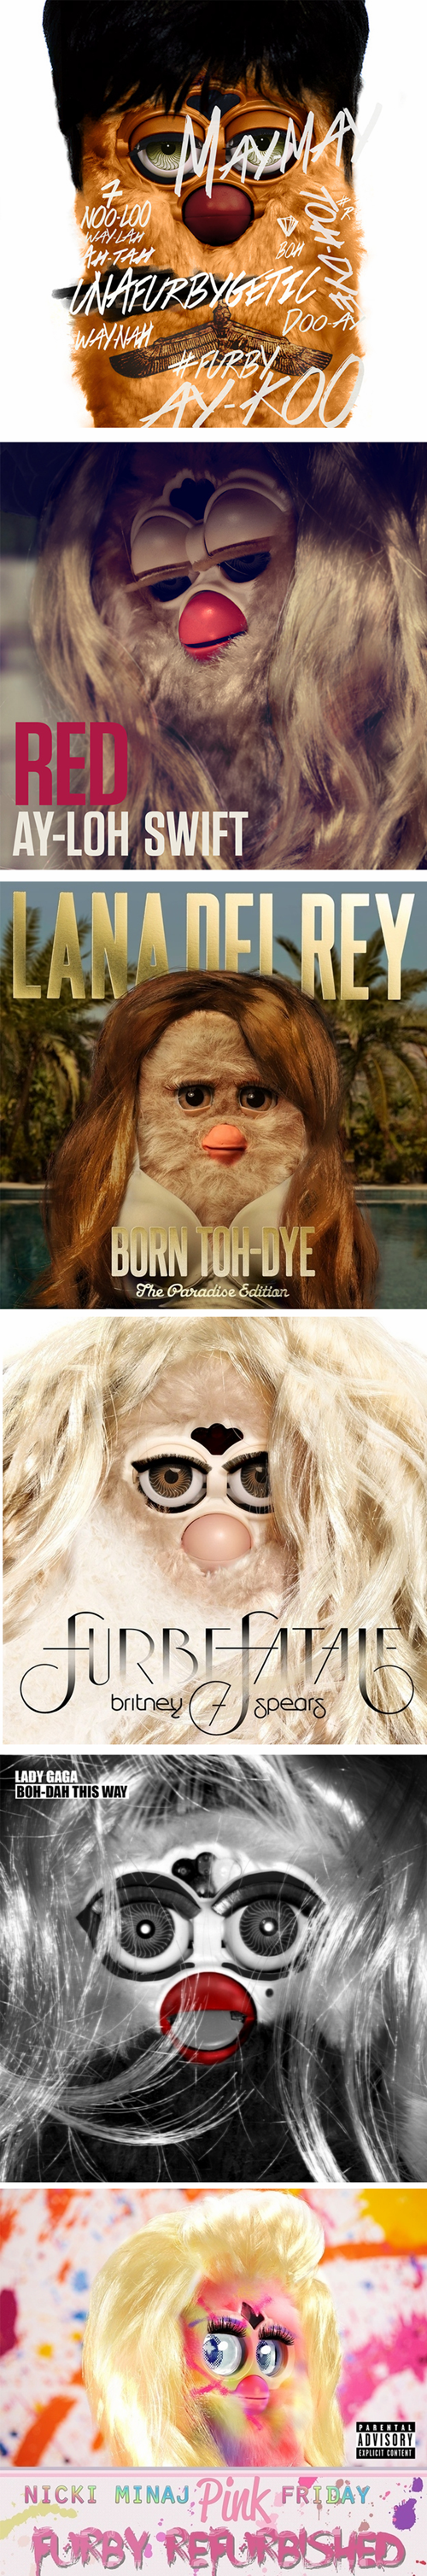 taylor swift lana del rey britney spears rihanna lady gaga furbies nicki minaj album covers - 7132621824